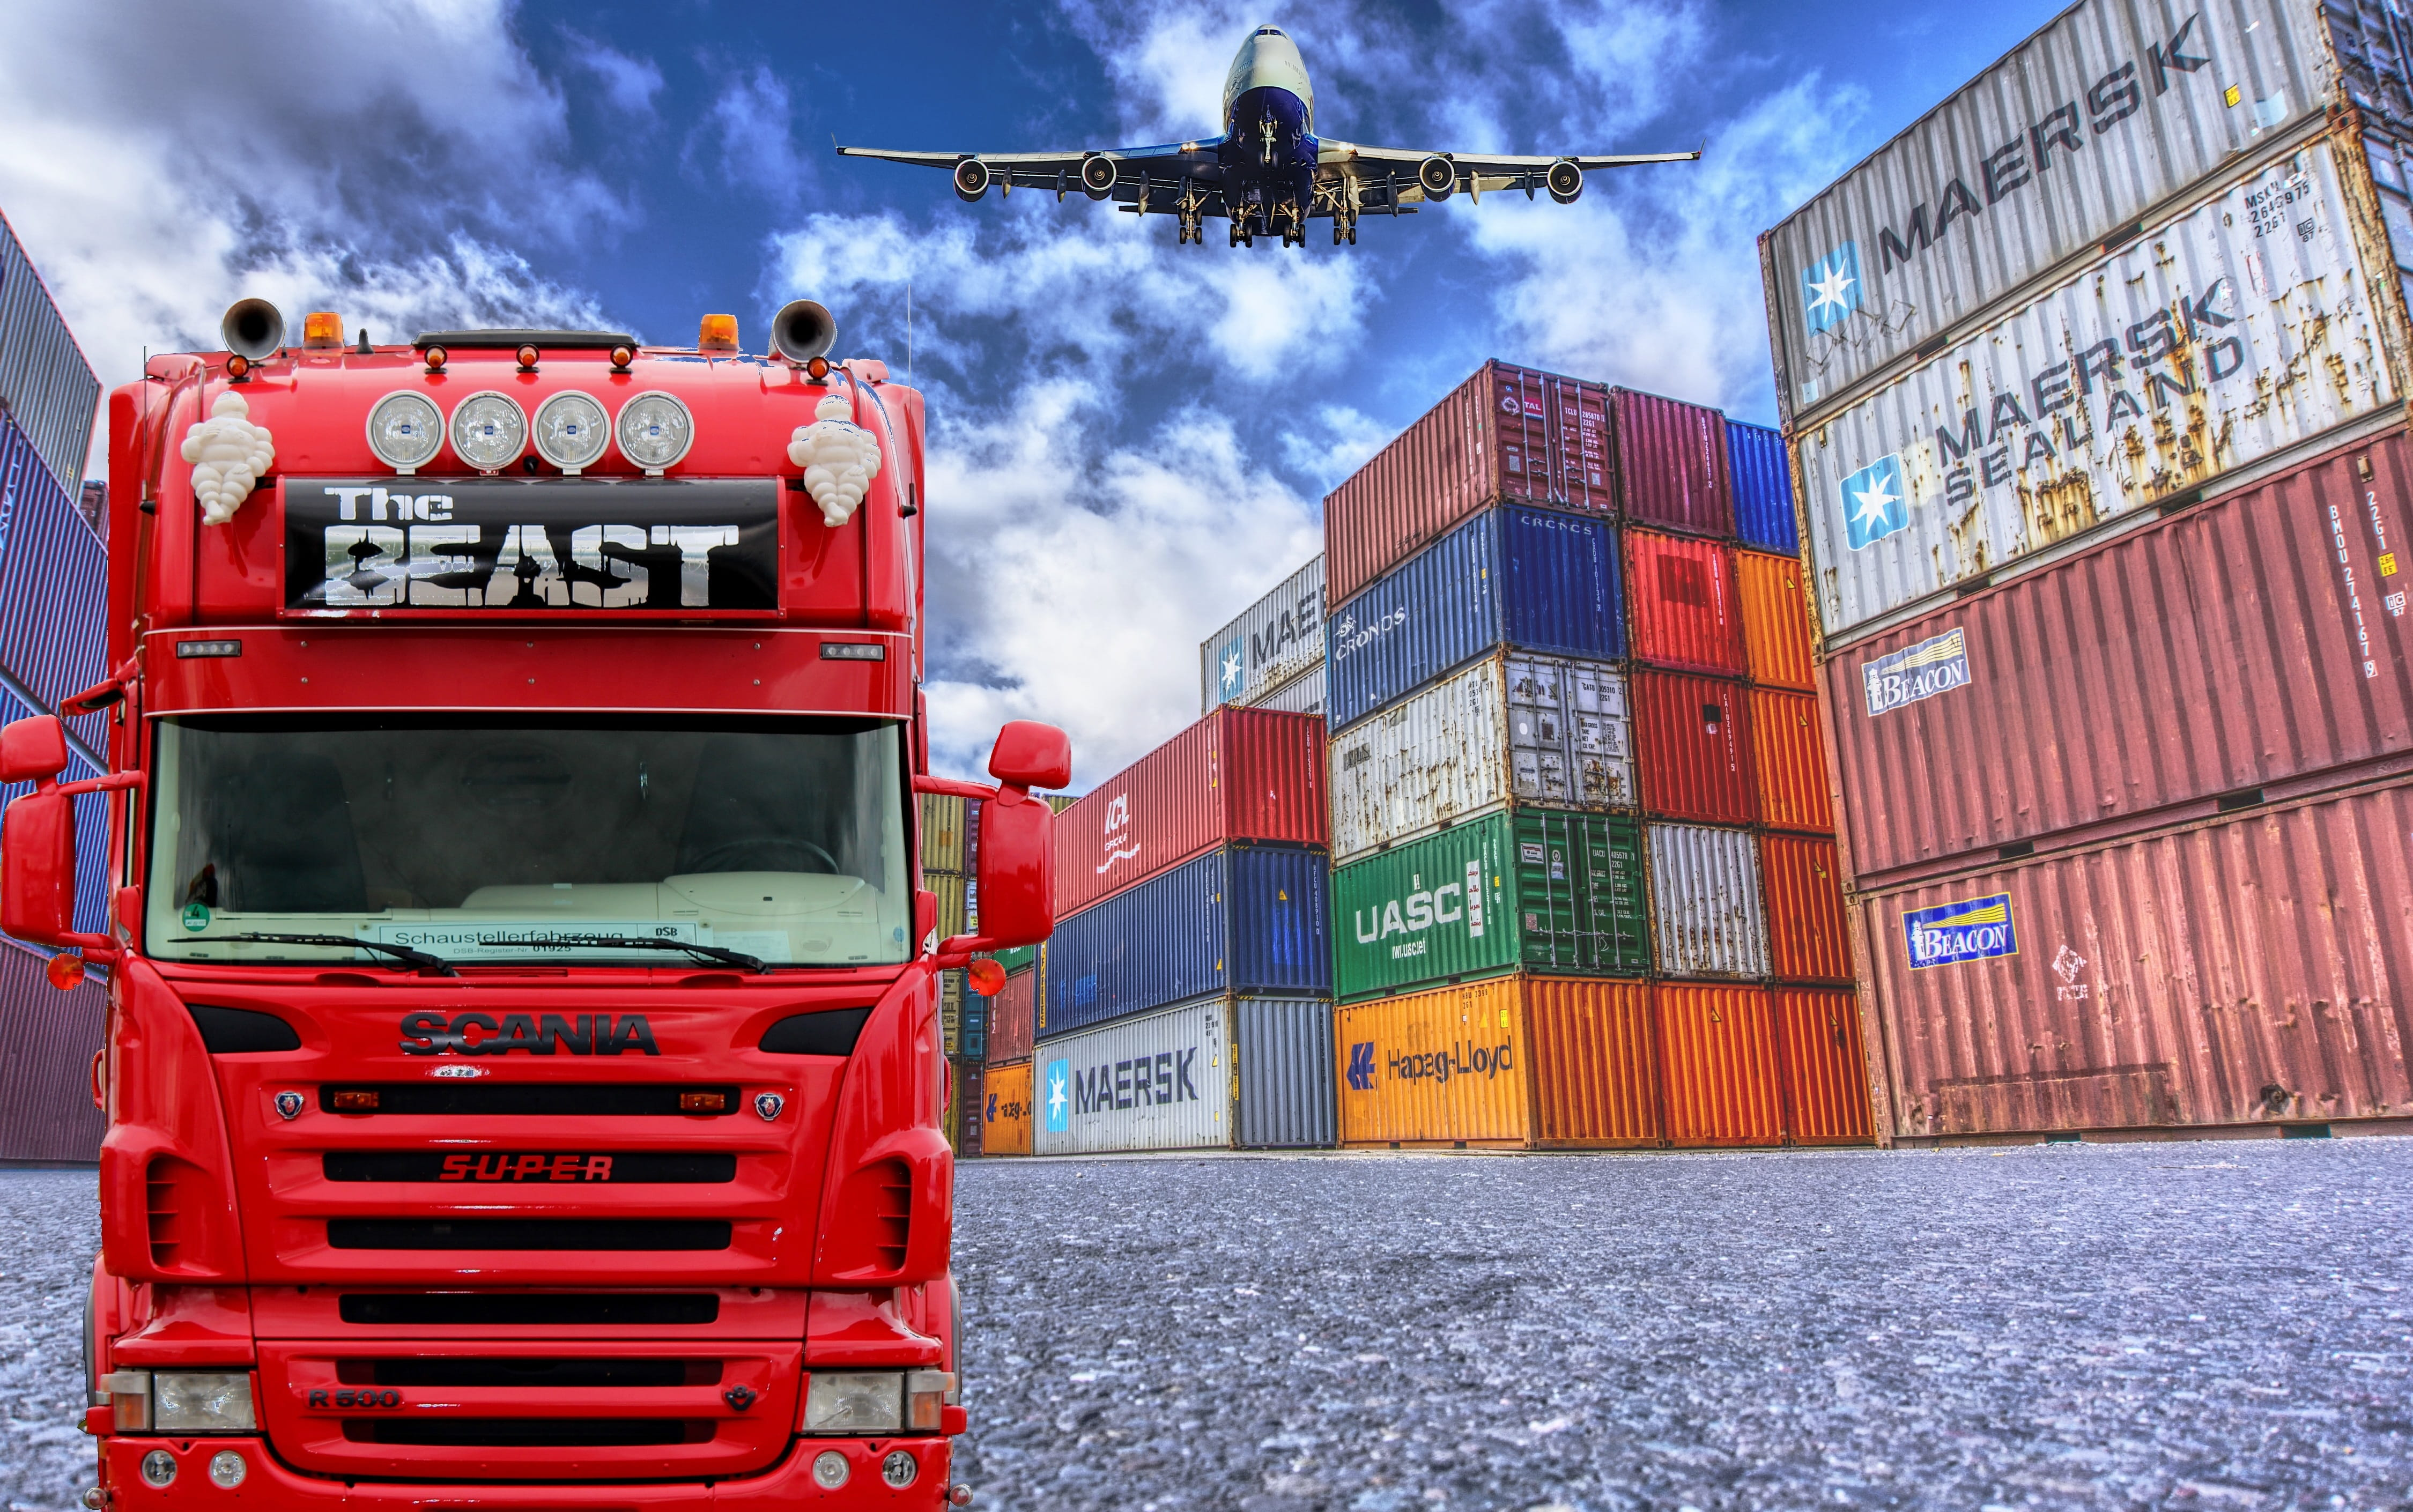 Transwestern: Covid-19 to drive U.S. On-Shoring, new Real Estate deals